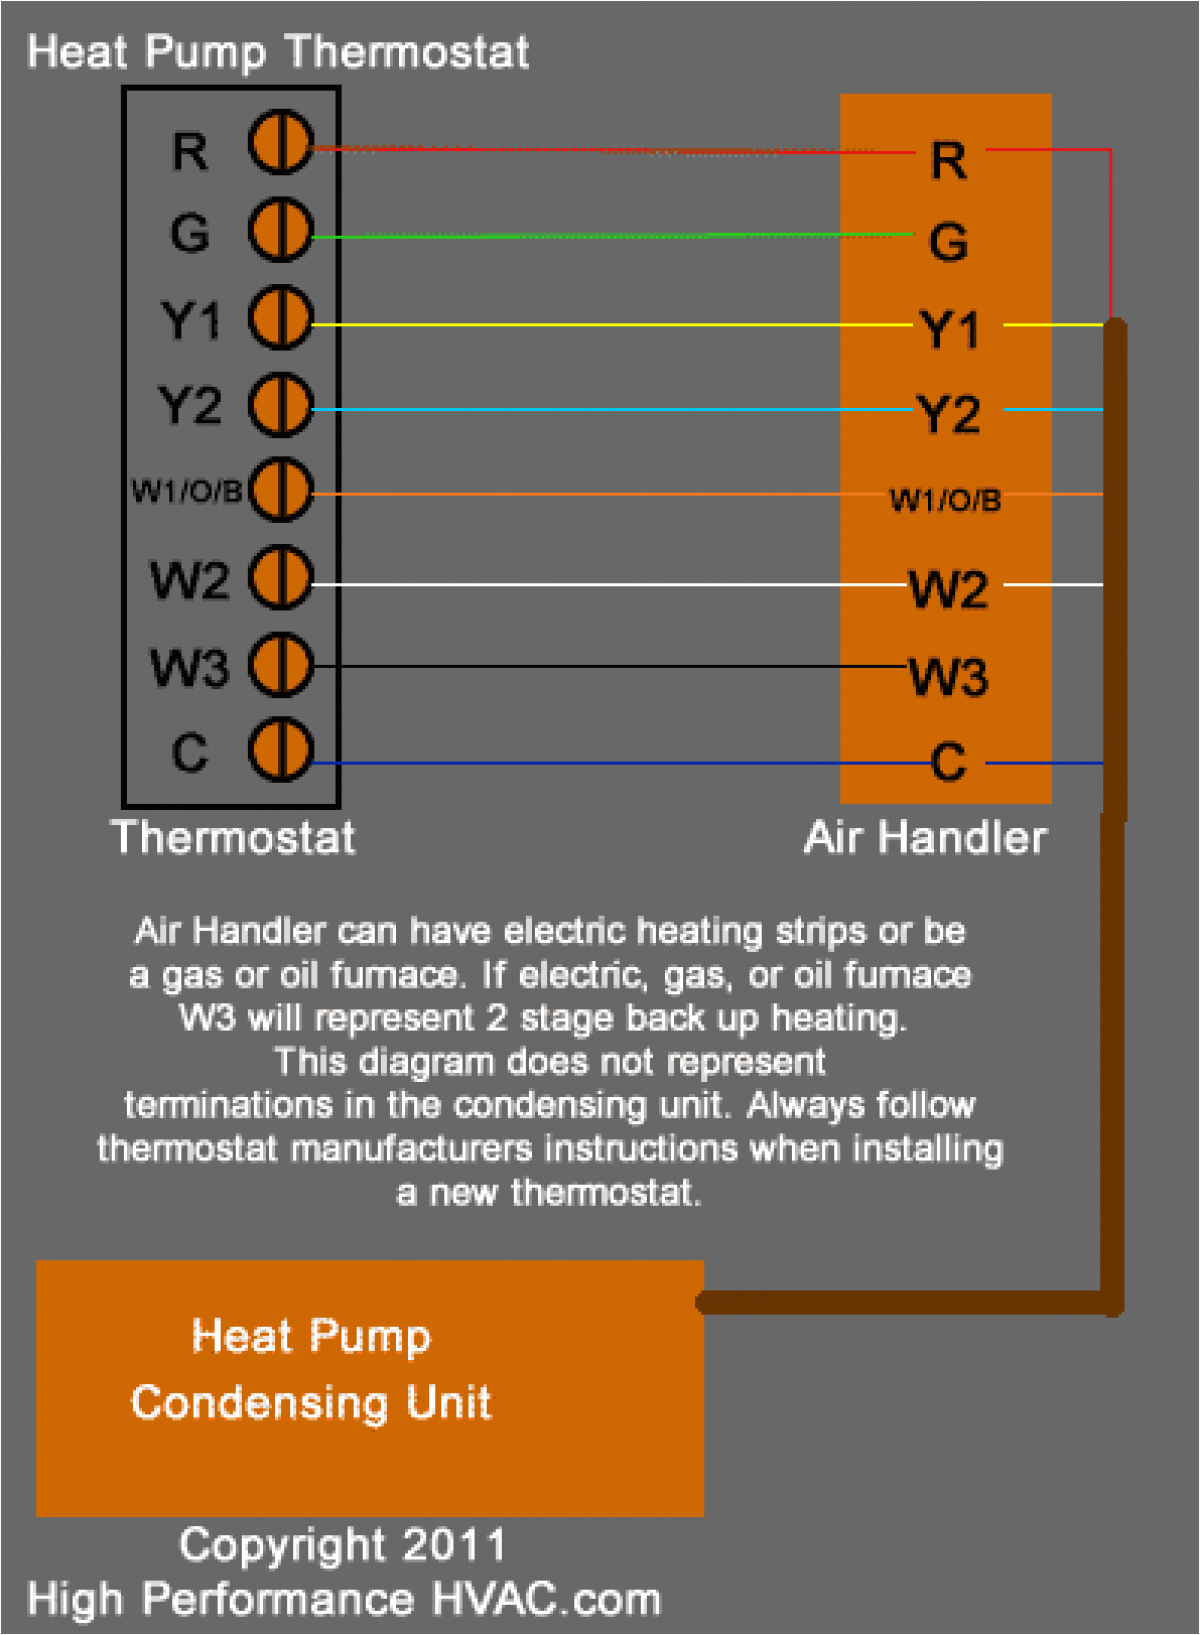 heat pump thermostat diagram 1200x1635 png